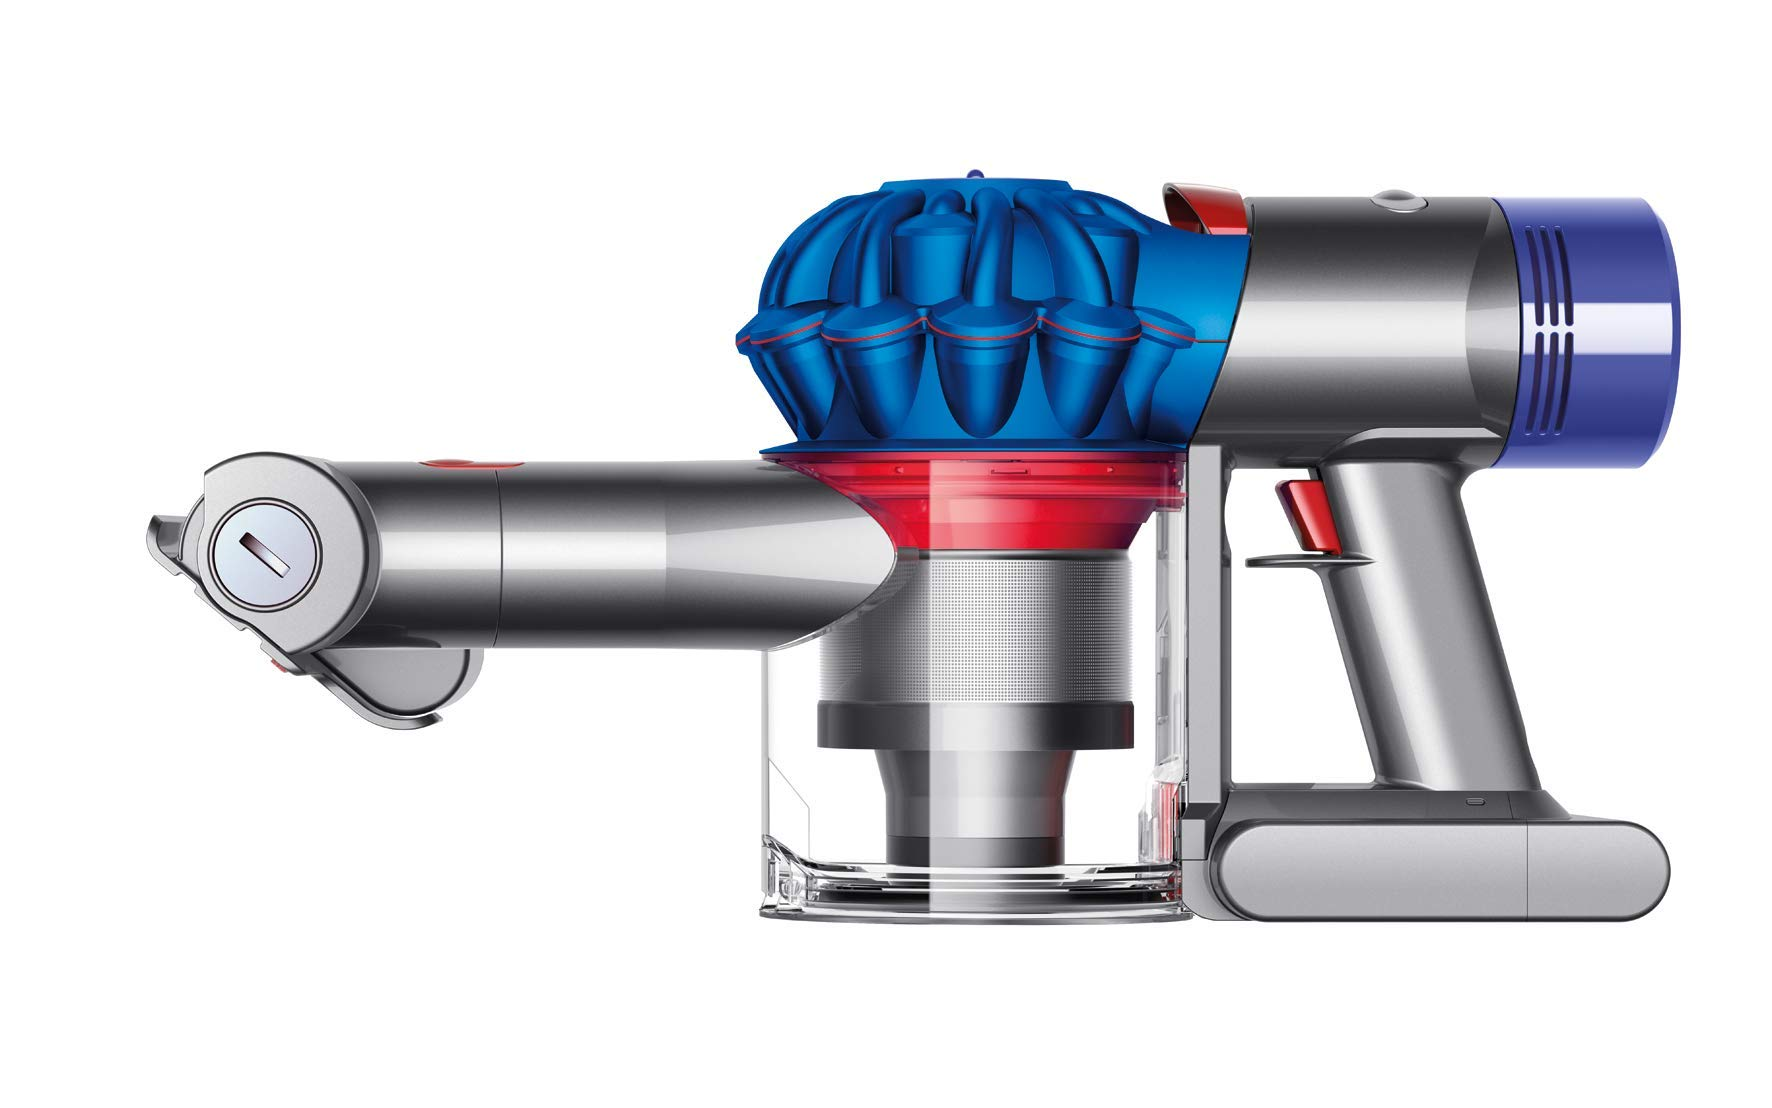 Dyson V7 Trigger Pro with HEPA Handheld Vacuum Cleaner, Blue by Dyson